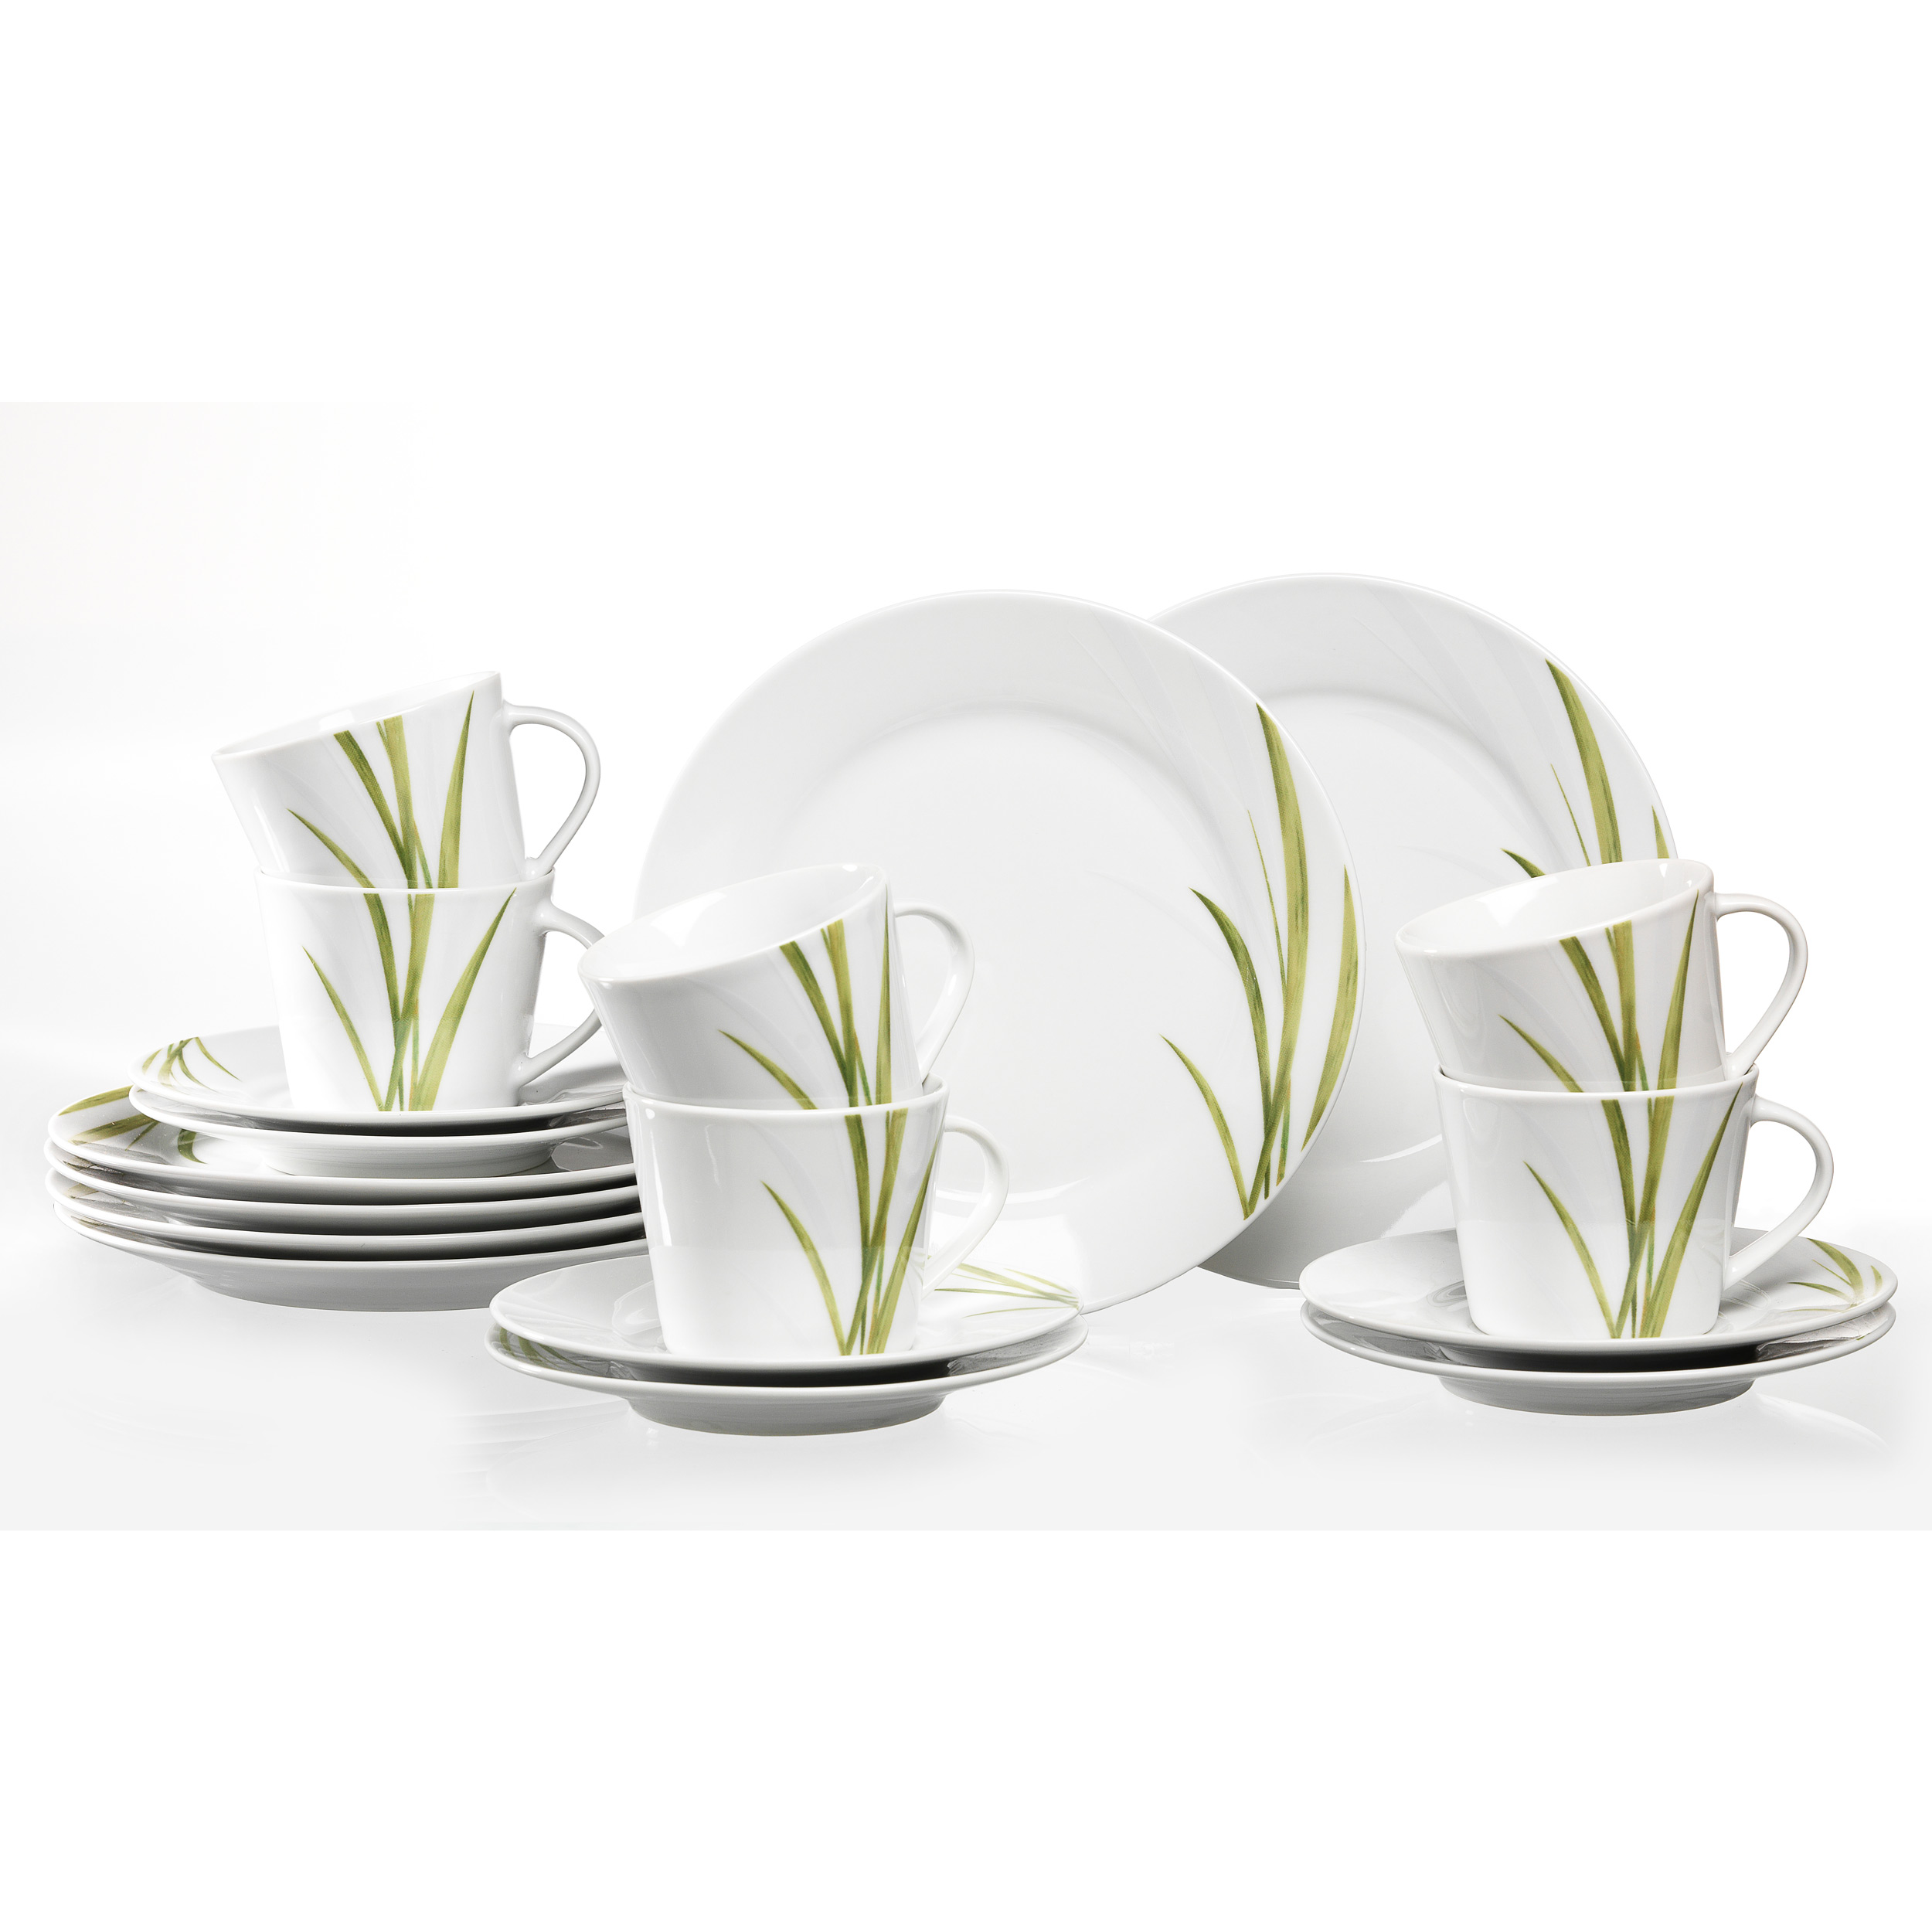 ritzenhoff breker aveda coffee set white green grass porcelain 18 pcs at about shop. Black Bedroom Furniture Sets. Home Design Ideas